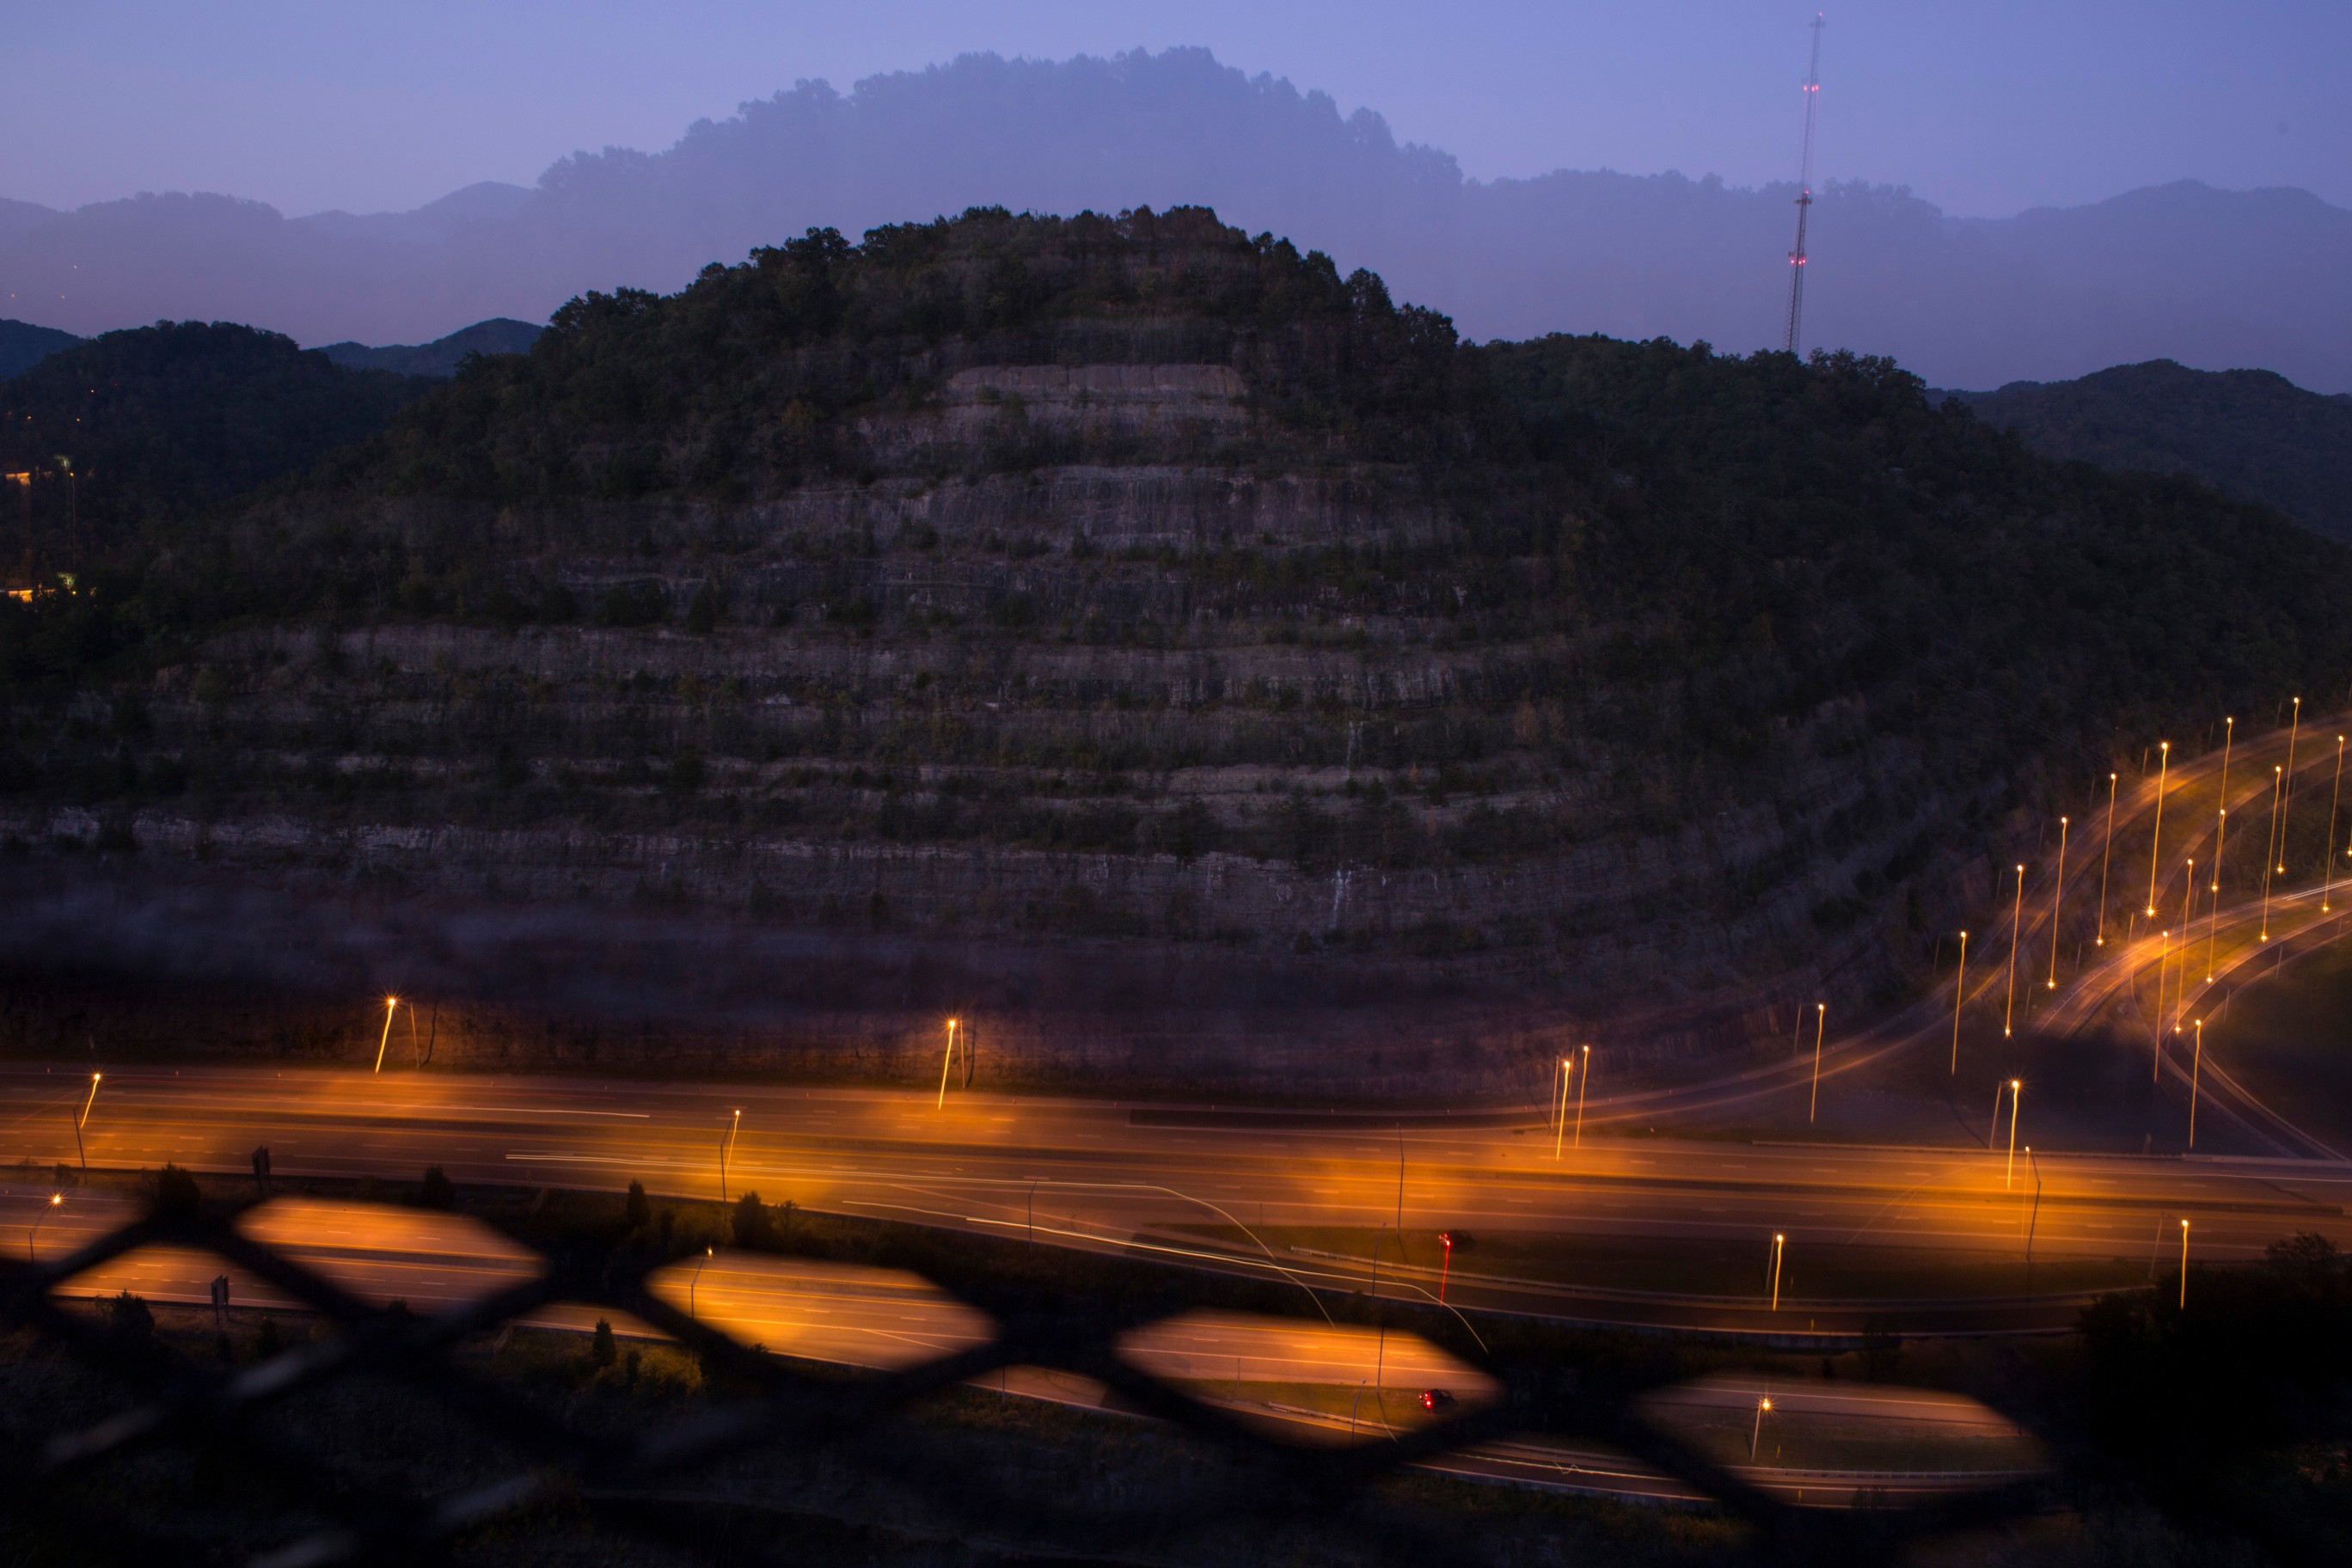 Layers of rock are seen towering above a busy highway just outside of Pikeville, Ky., on Saturday, September, 29, 2017. (Photo by Brittany Greeson/GroundTruth)